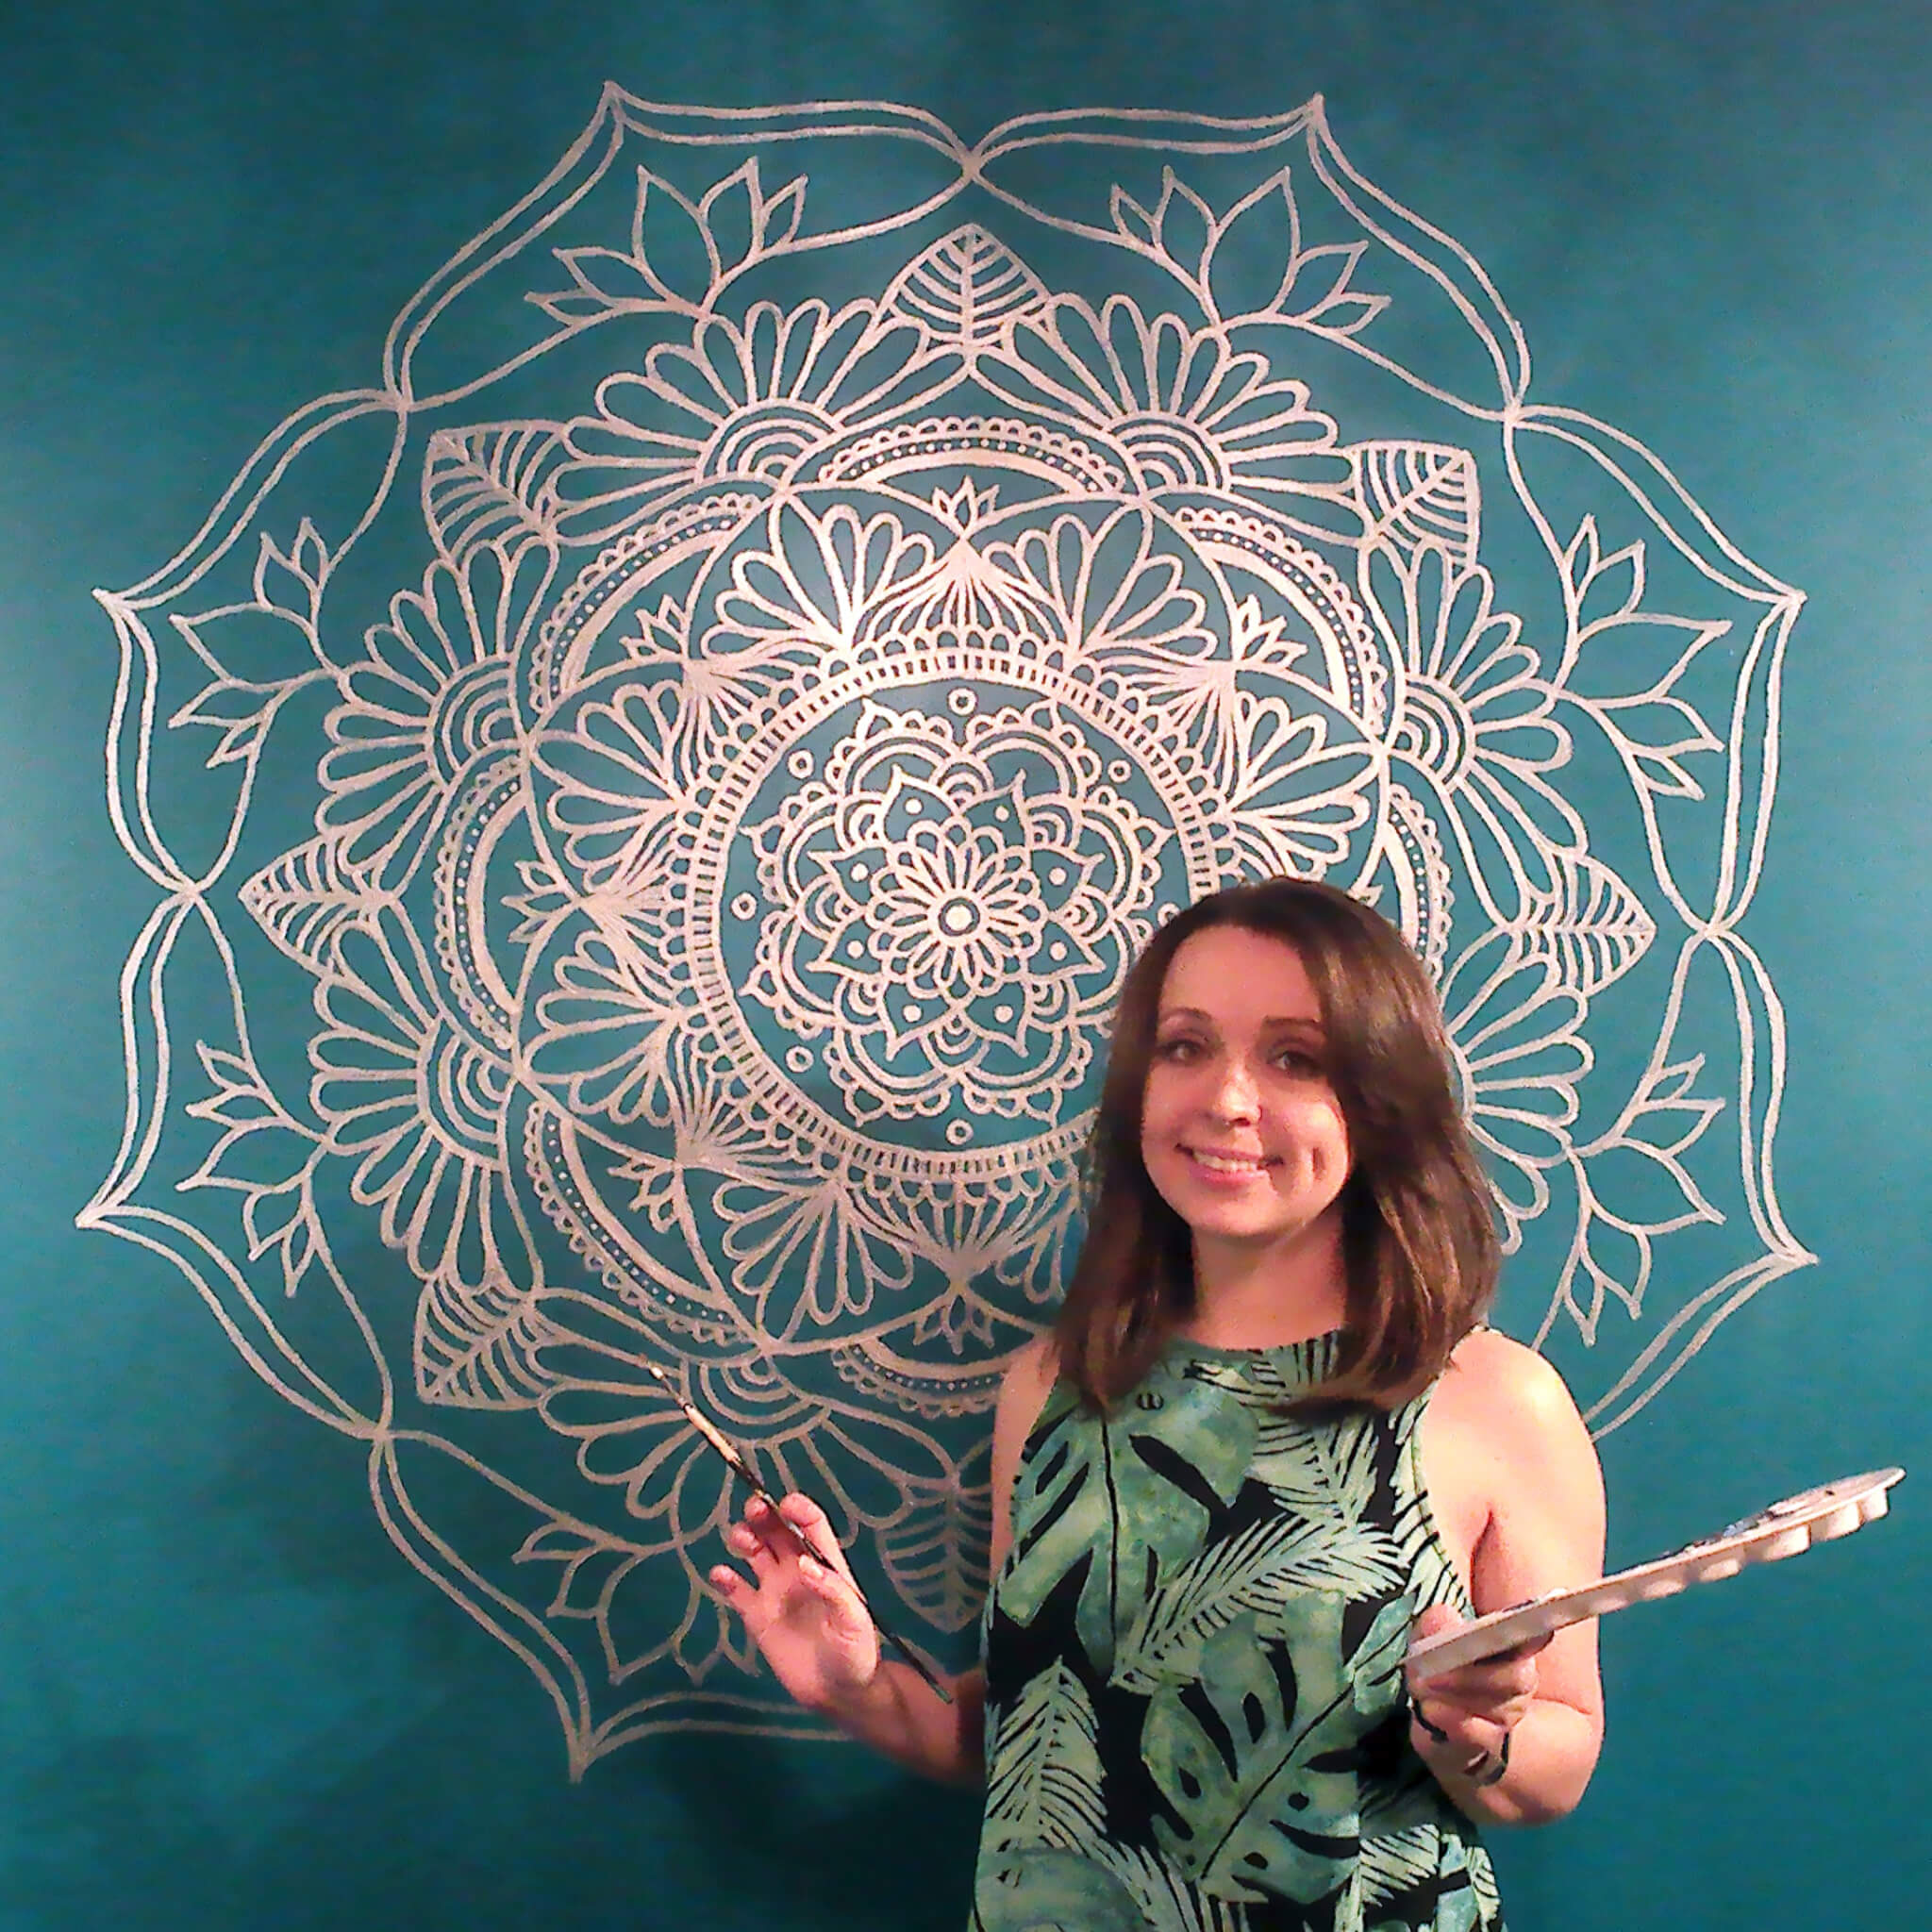 Painting A Mandala On My Wall Julie Erin Designs